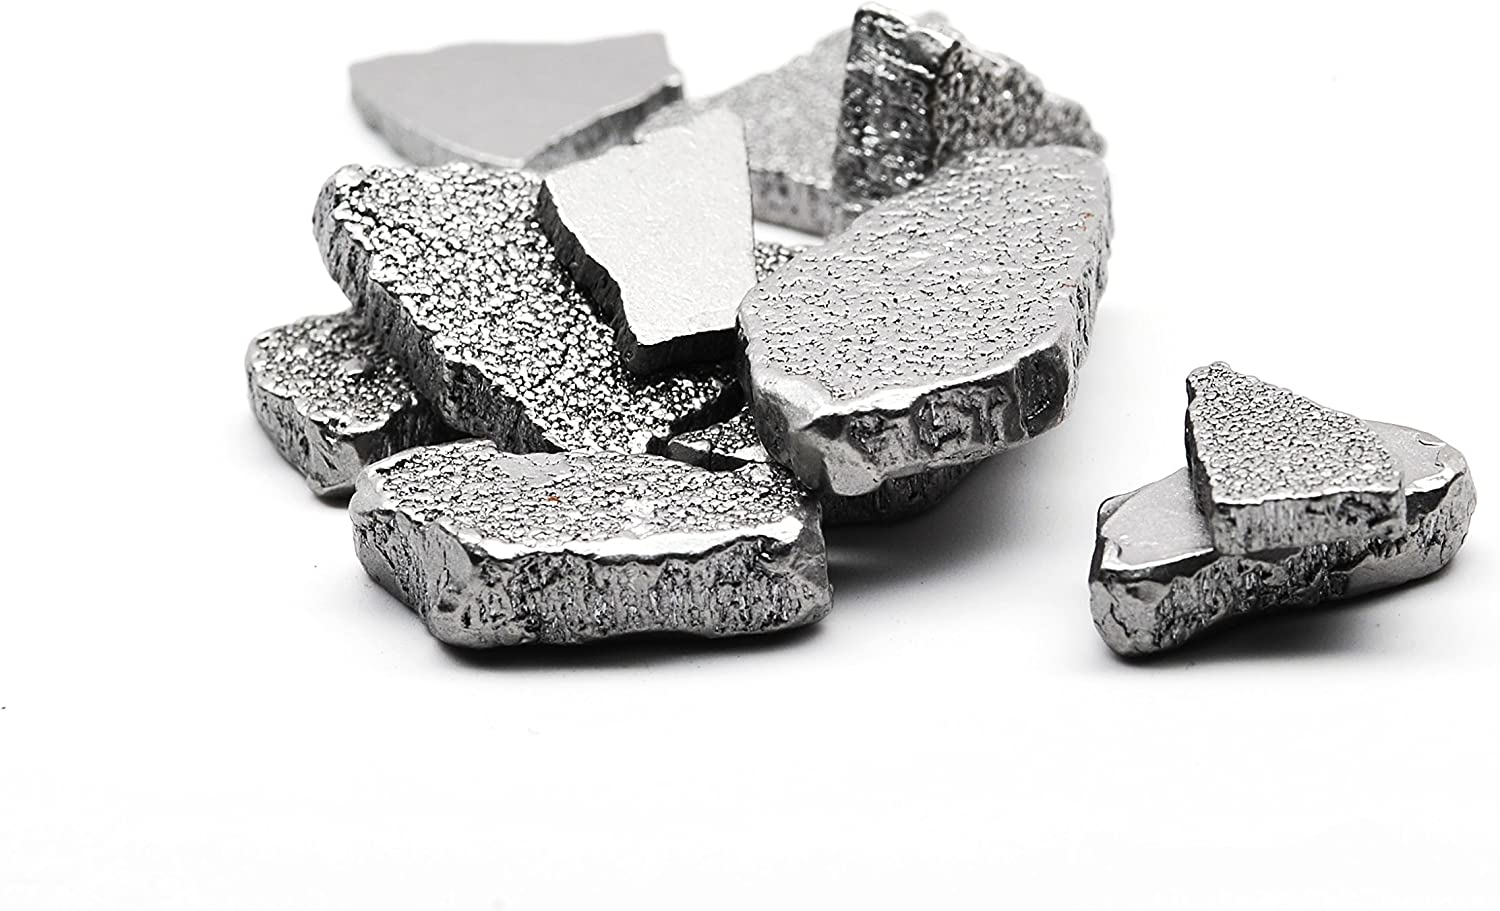 Iron Metal Gifts 99.99% Pure Element 10 Recommendation Grams Collection